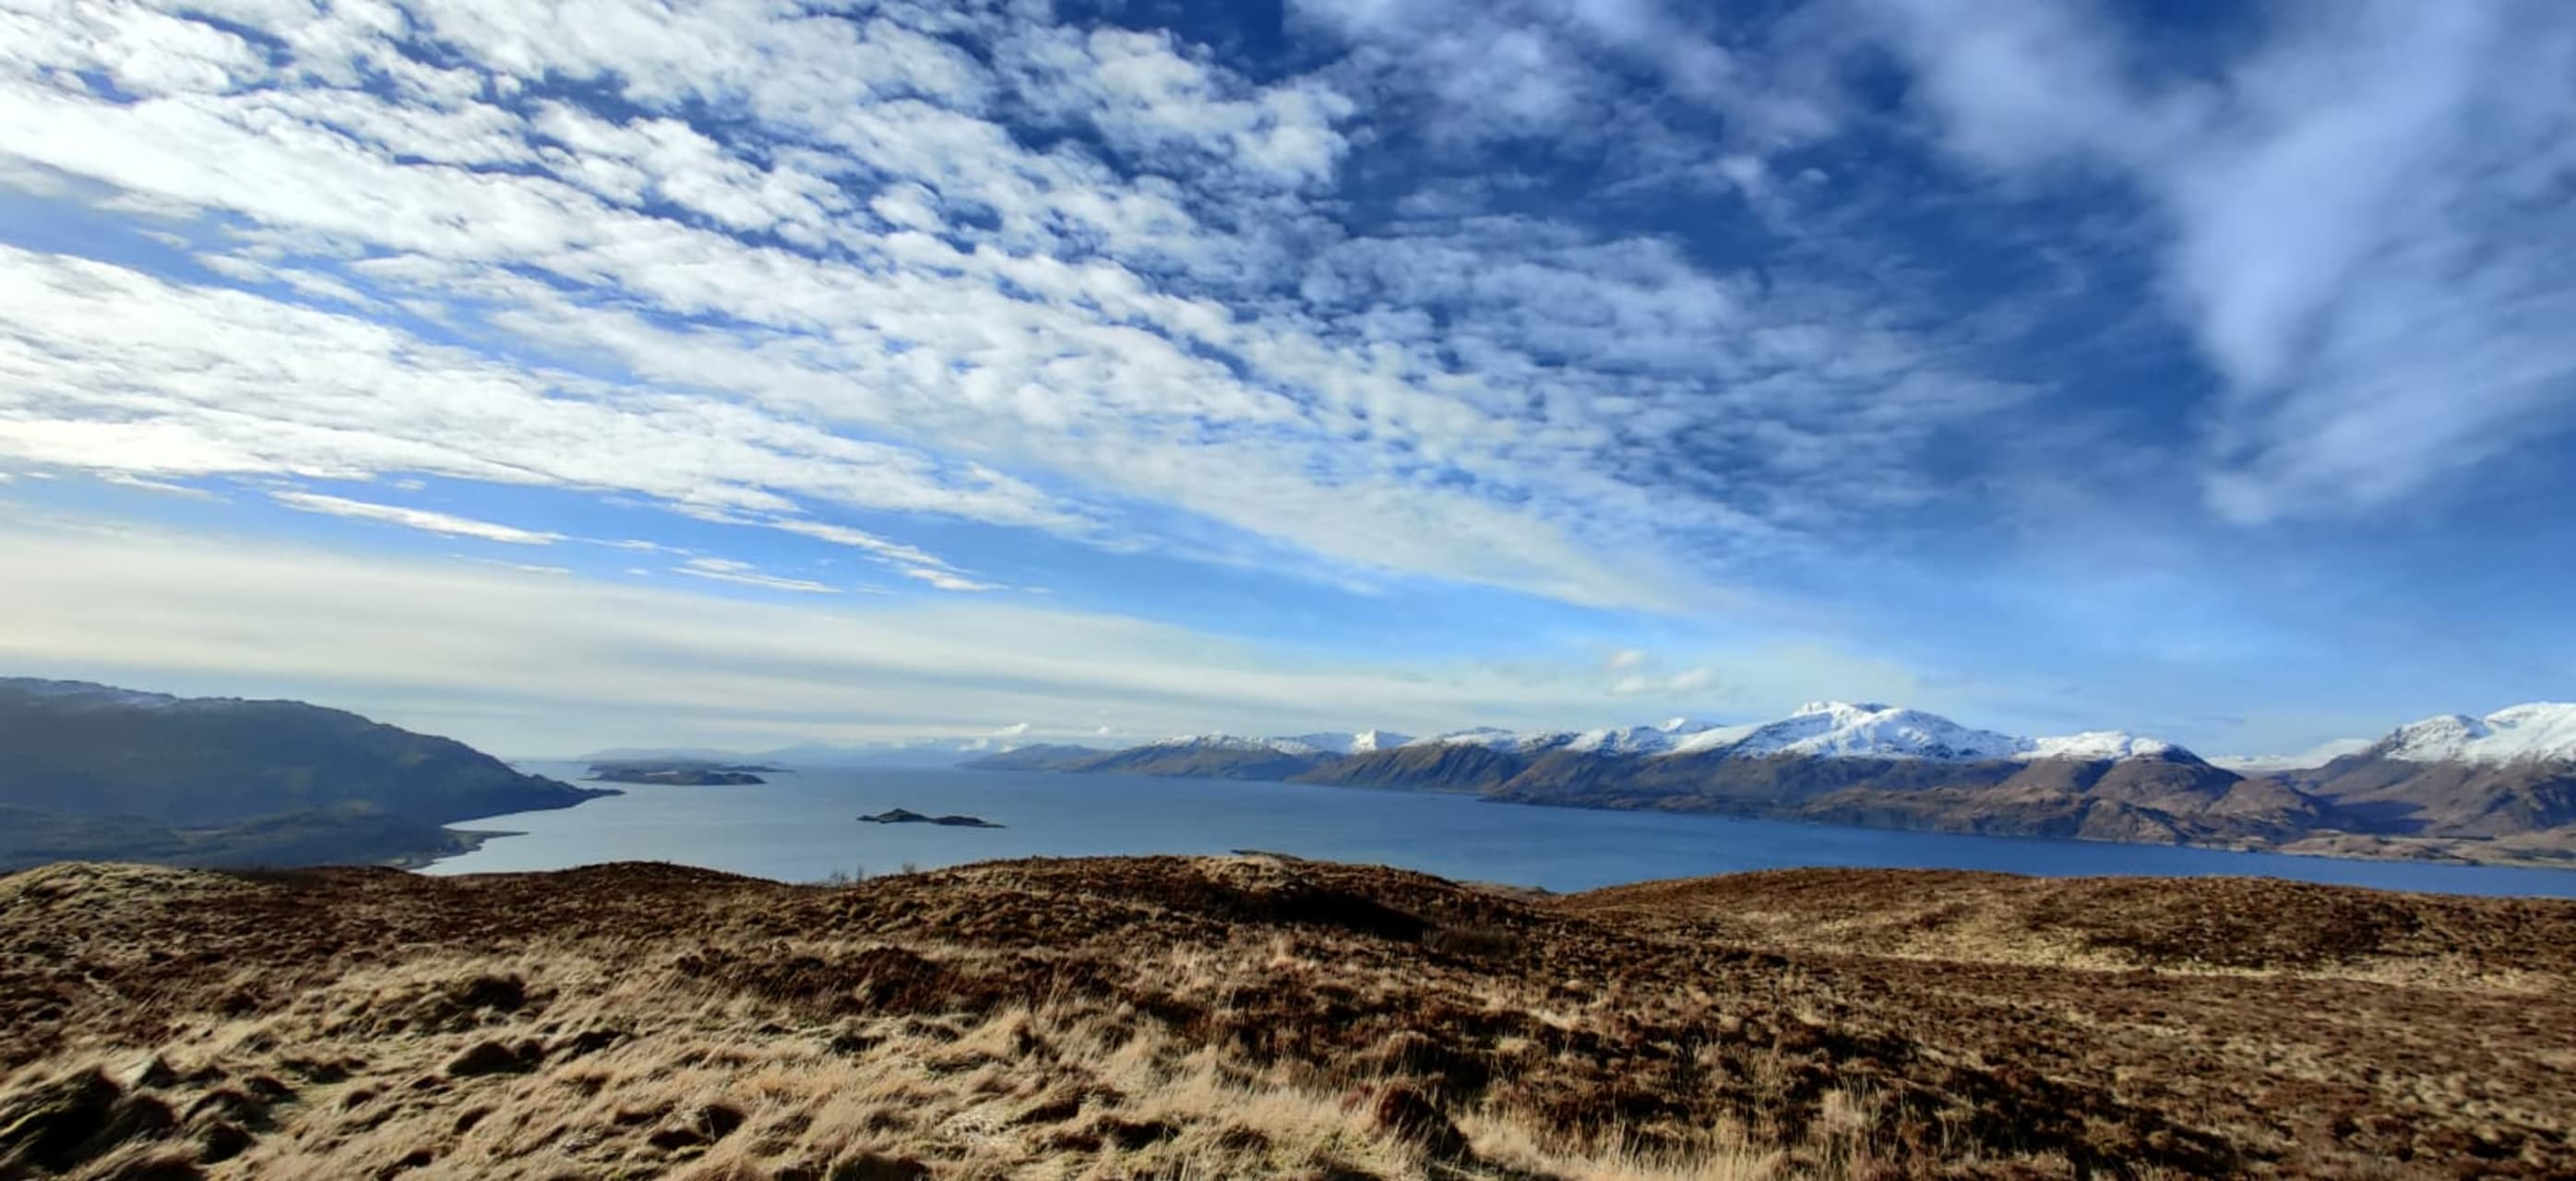 The Scottish Highlands - Stories of a Sea Kingdom